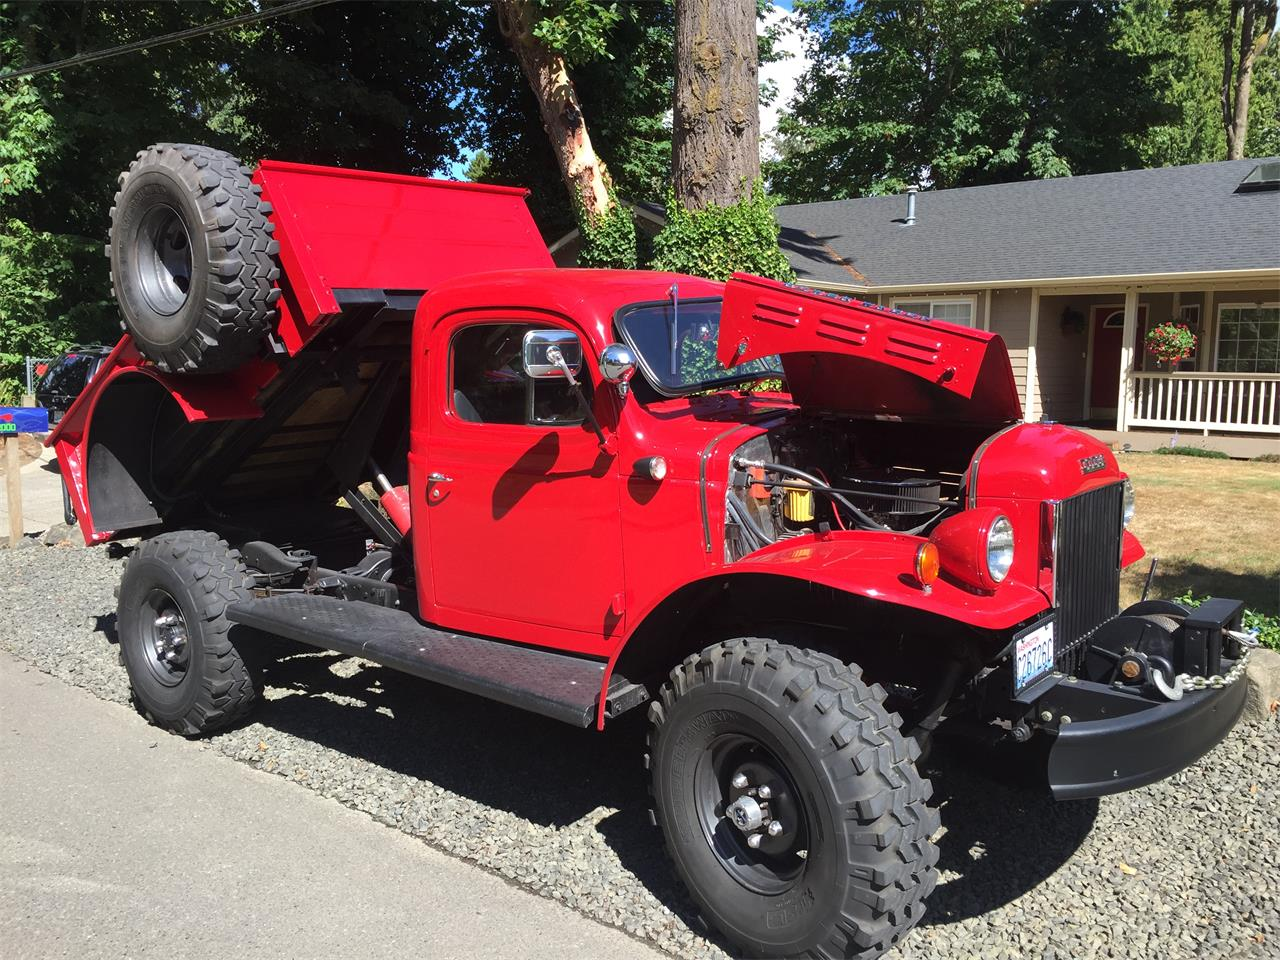 Large Picture of 1949 Power Wagon located in Lacey Washington - $55,000.00 Offered by a Private Seller - JS10